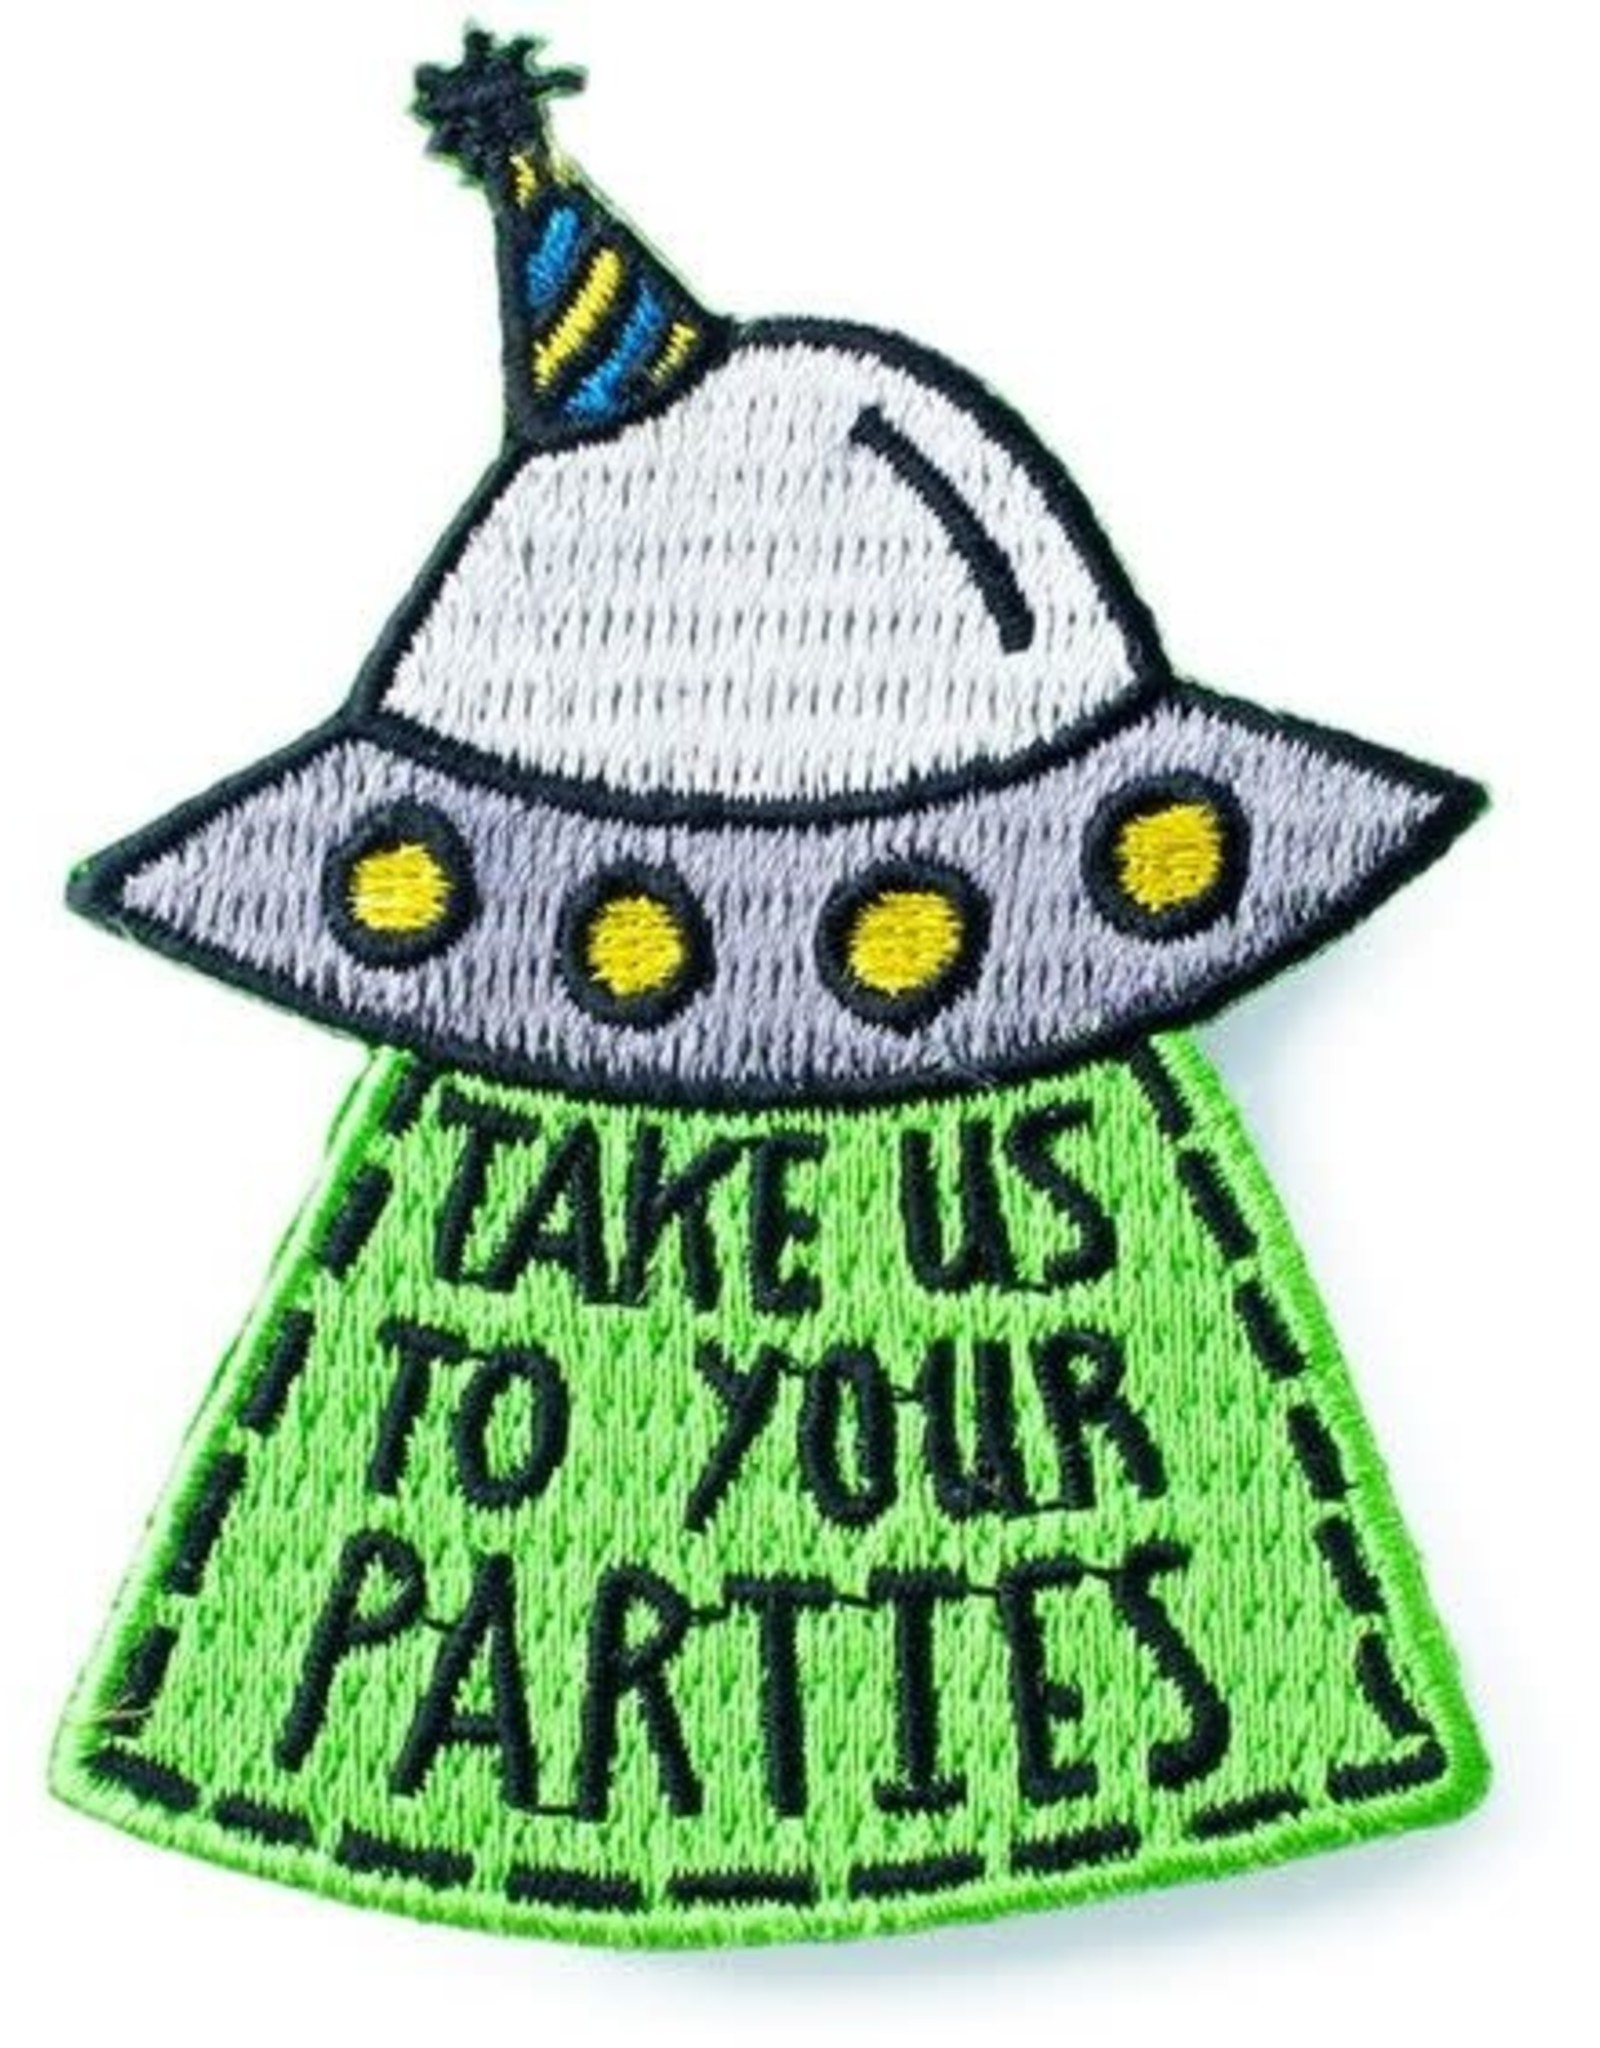 Valley Cruise Press ''Take us to your parties'' Iron on Patch by Valley Cruise Press